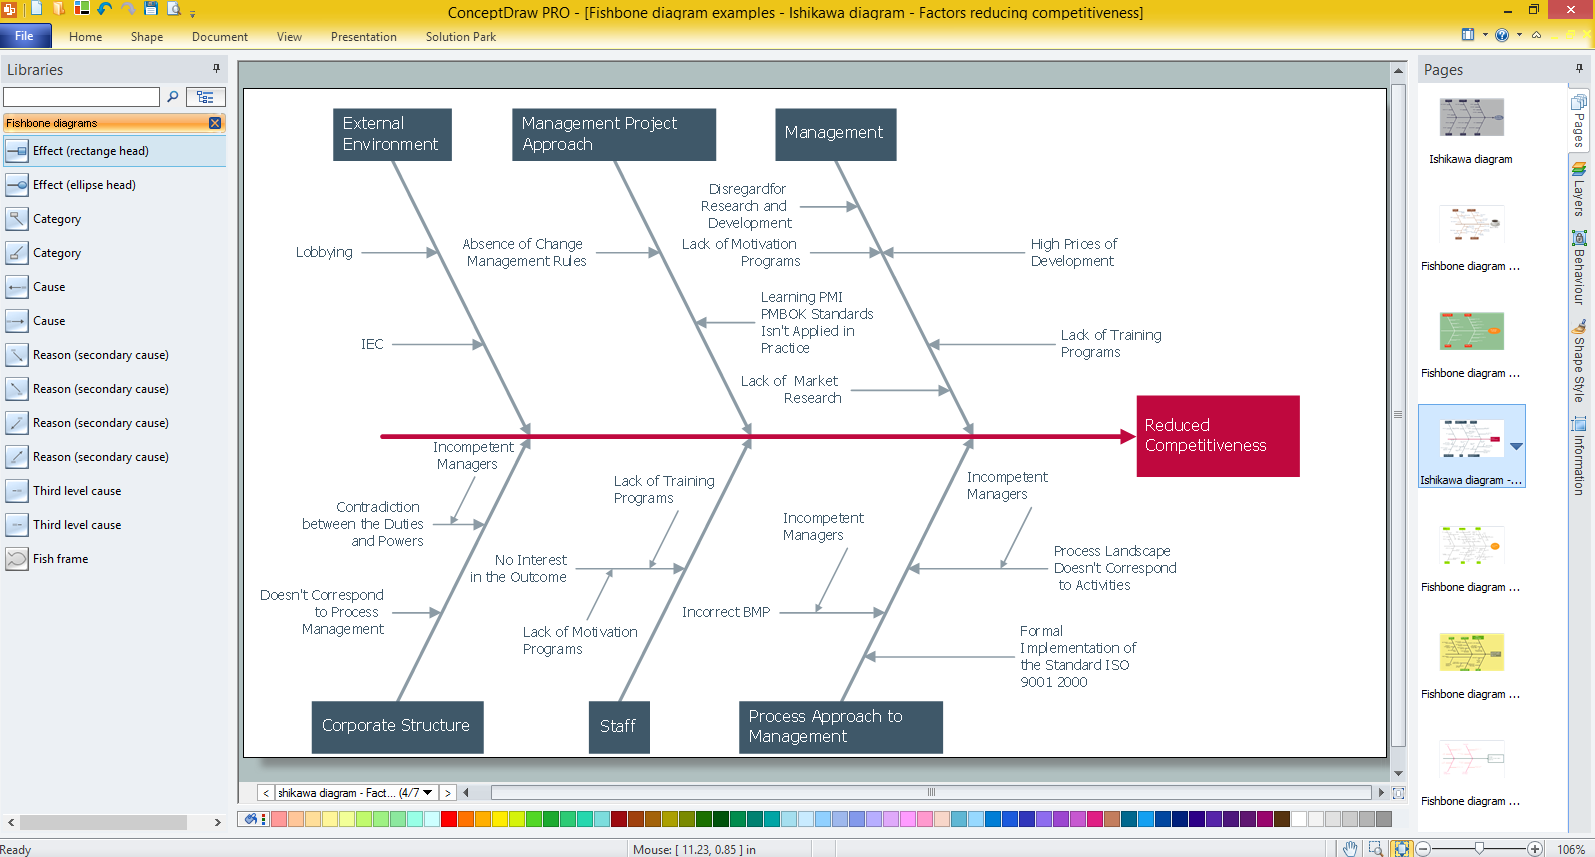 Create Fishbone Diagrams with the ConceptDraw